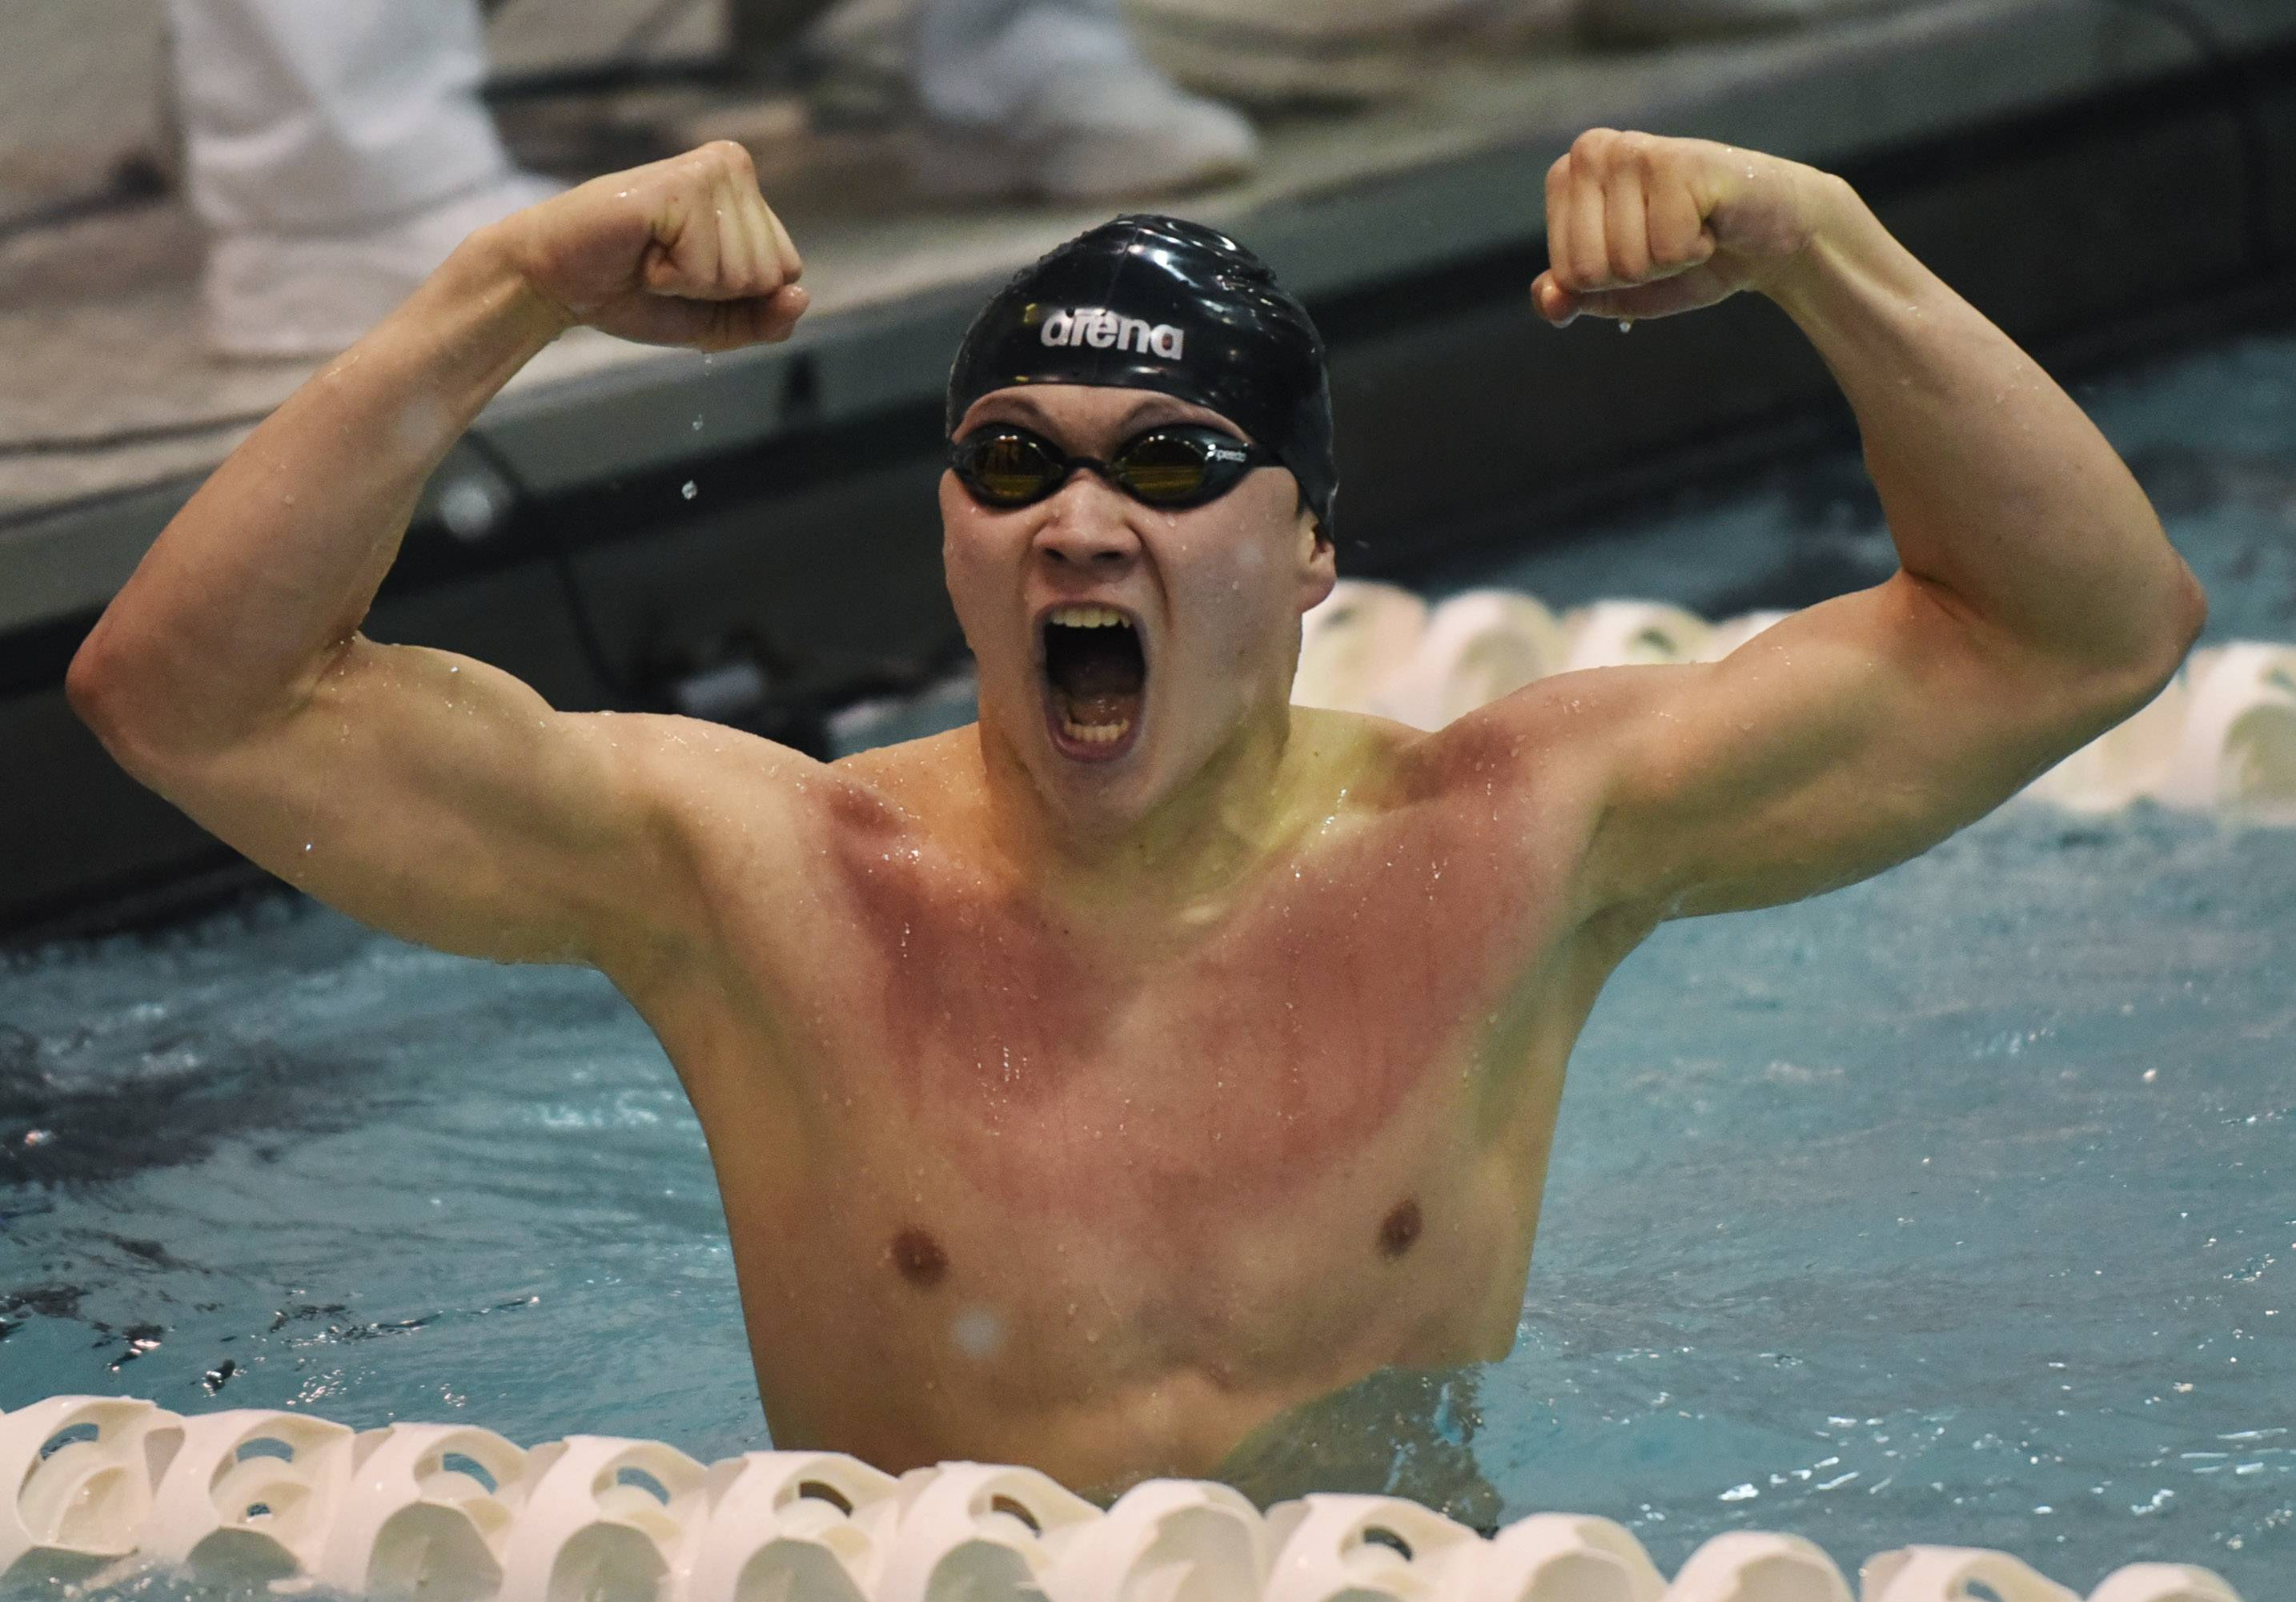 Glenbrook South's Sam Iida celbrates after breaking his own state record in the 200-yard individual medley with a time of 1:46.02 during the boys swimming state finals at New Trier High School in Winnetka Saturday.